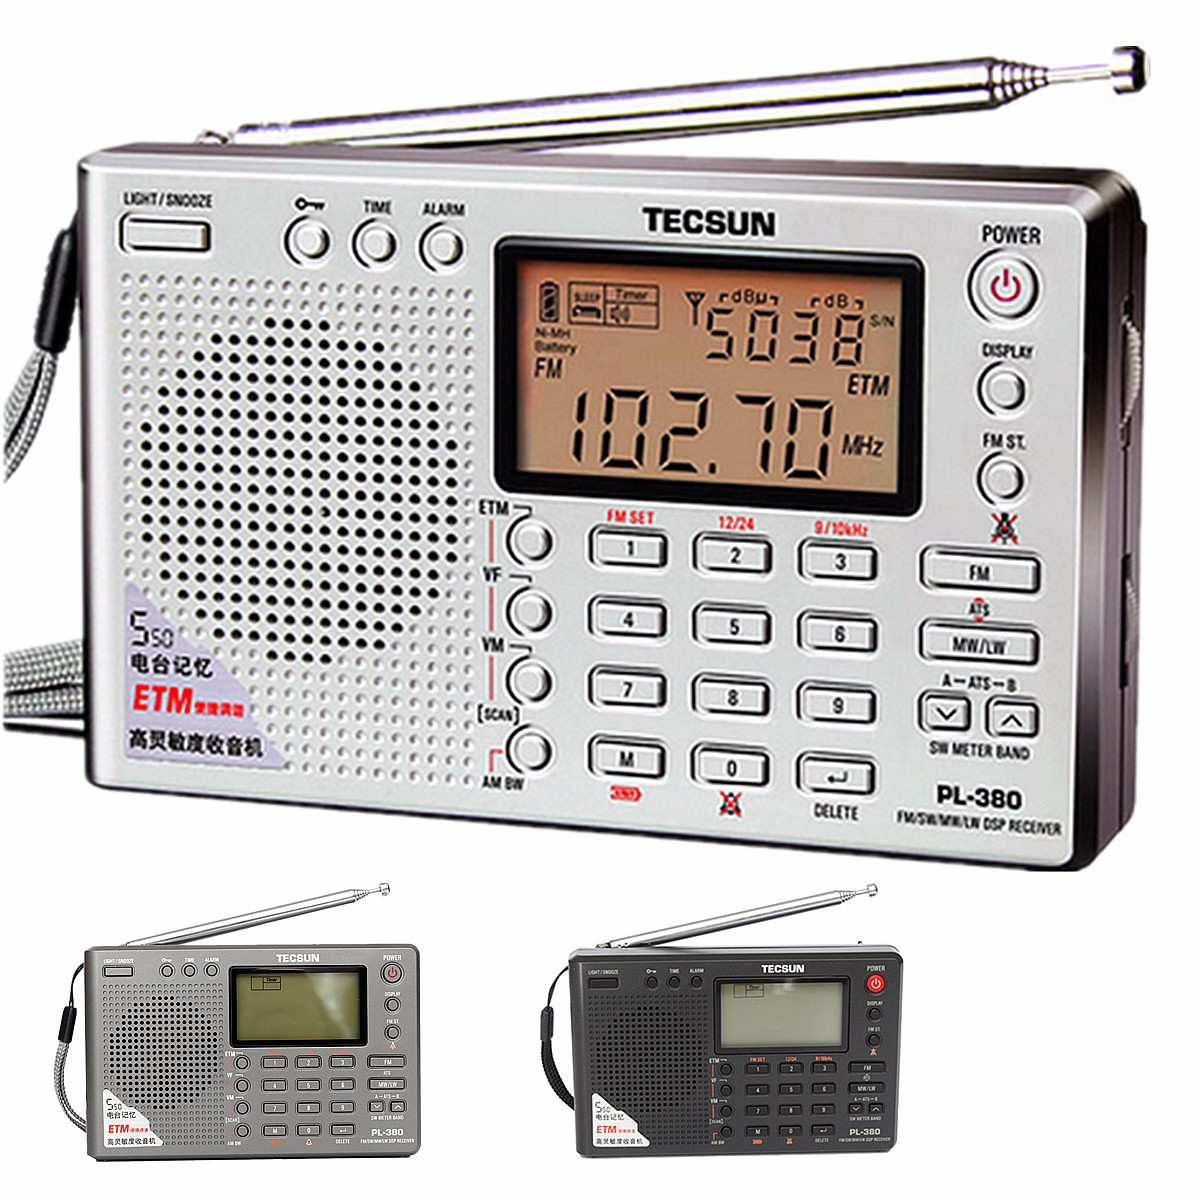 TECSUN PL-380 DSP PLL FM MW SW LW Digital Stereo Radio World-Band Receiver New 7 Tuning Mode Selectable Silver Gray Black new tecsun s2000 s 2000 digital fm stereo lw mw sw ssb air pll synthesized world band radio receiver shipping by dhl